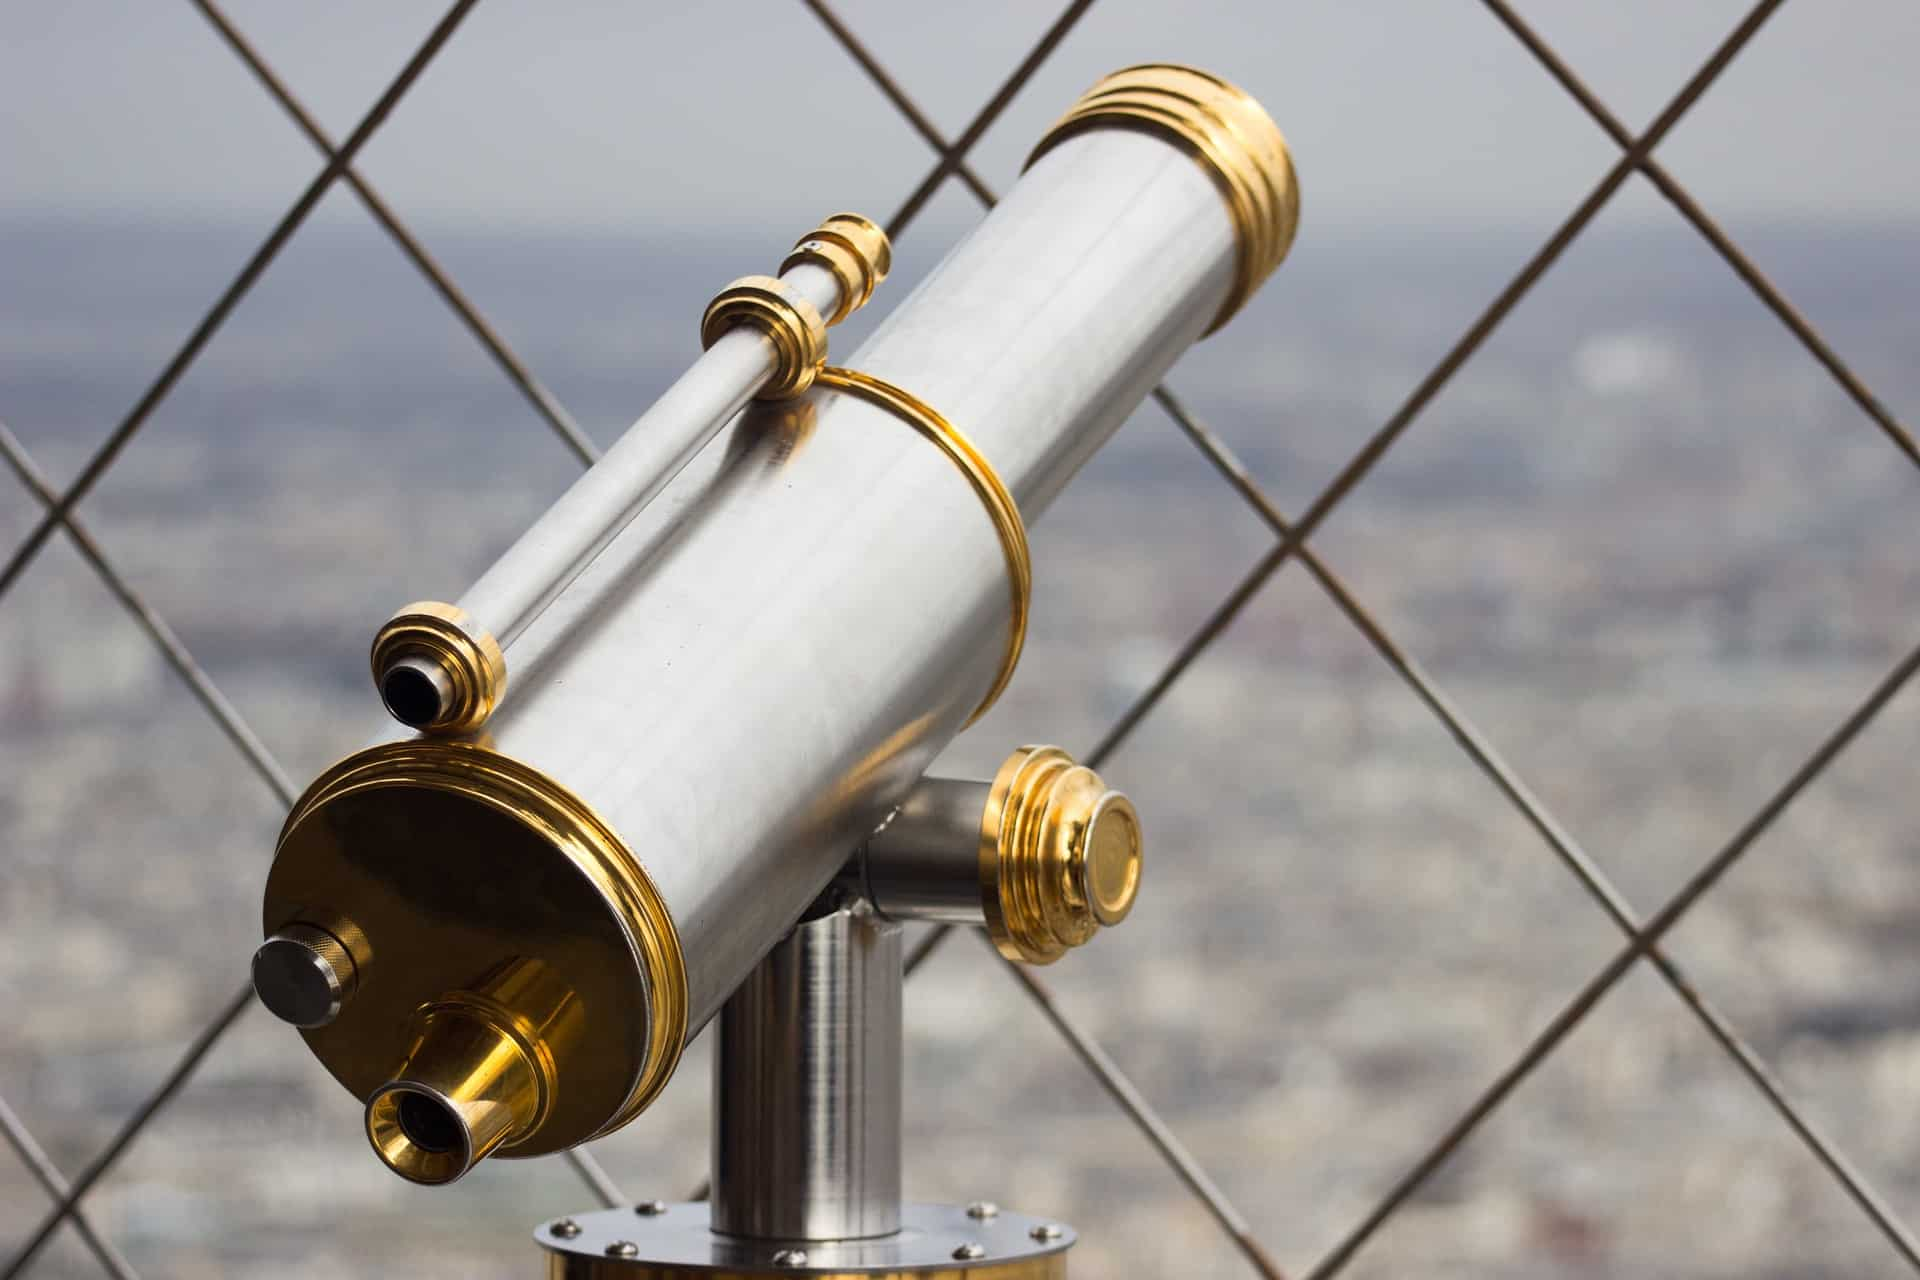 Astronomical Telescopes and Accessories